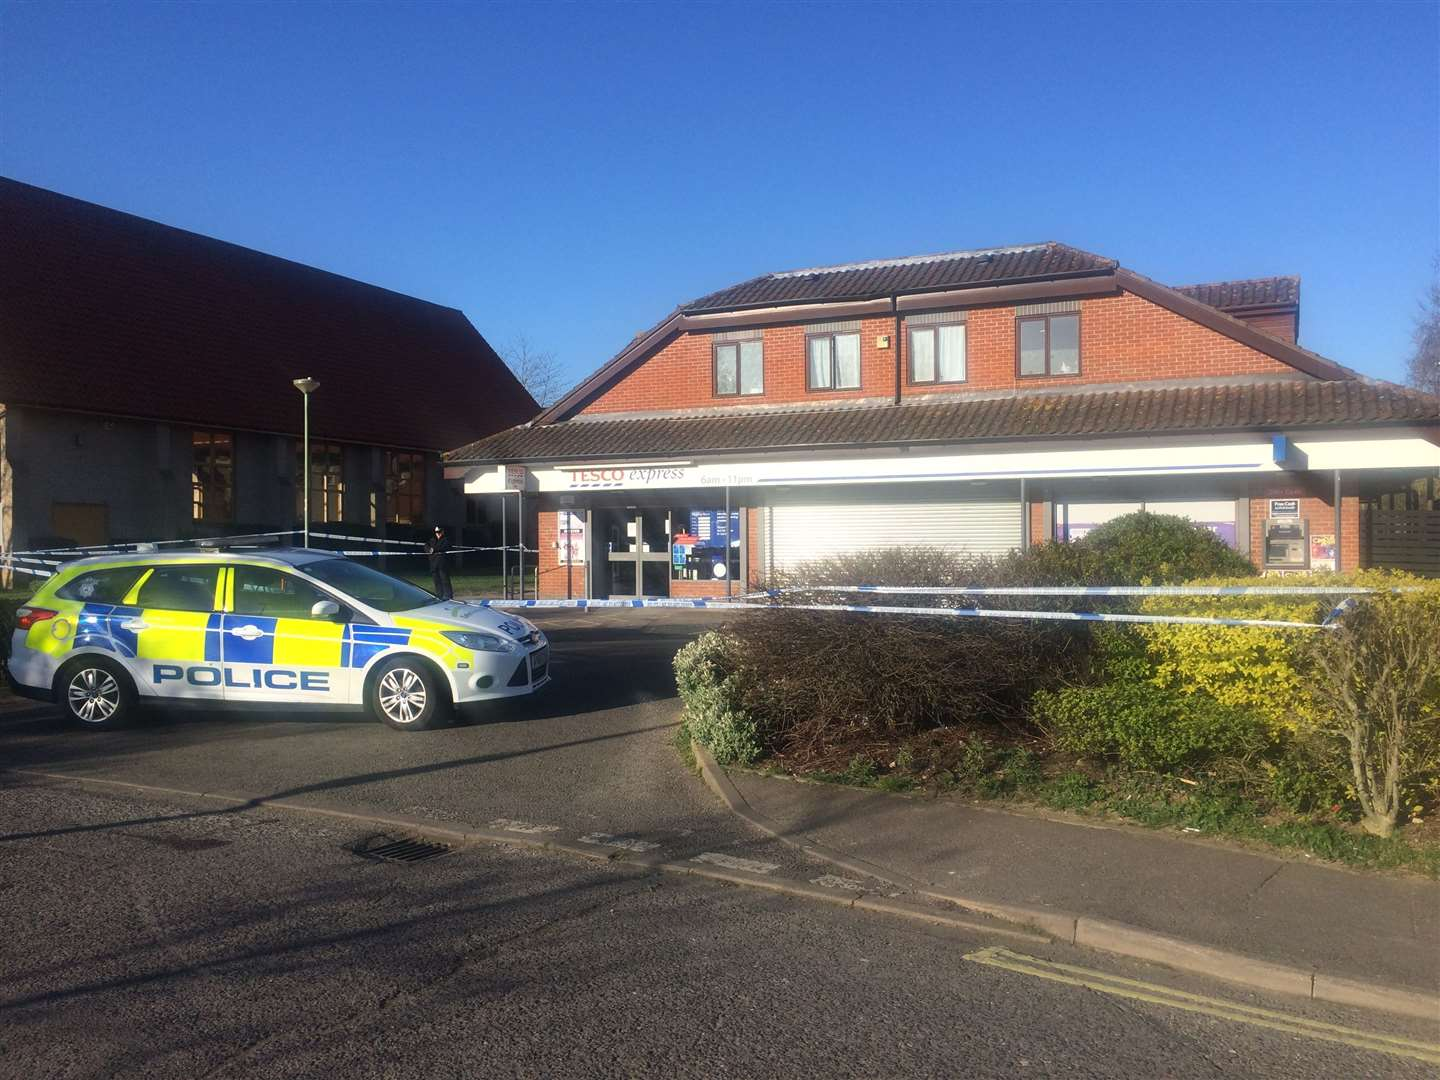 Police at scene of Tesco Express, in Lawson Place, Bury St Edmunds(32782582)